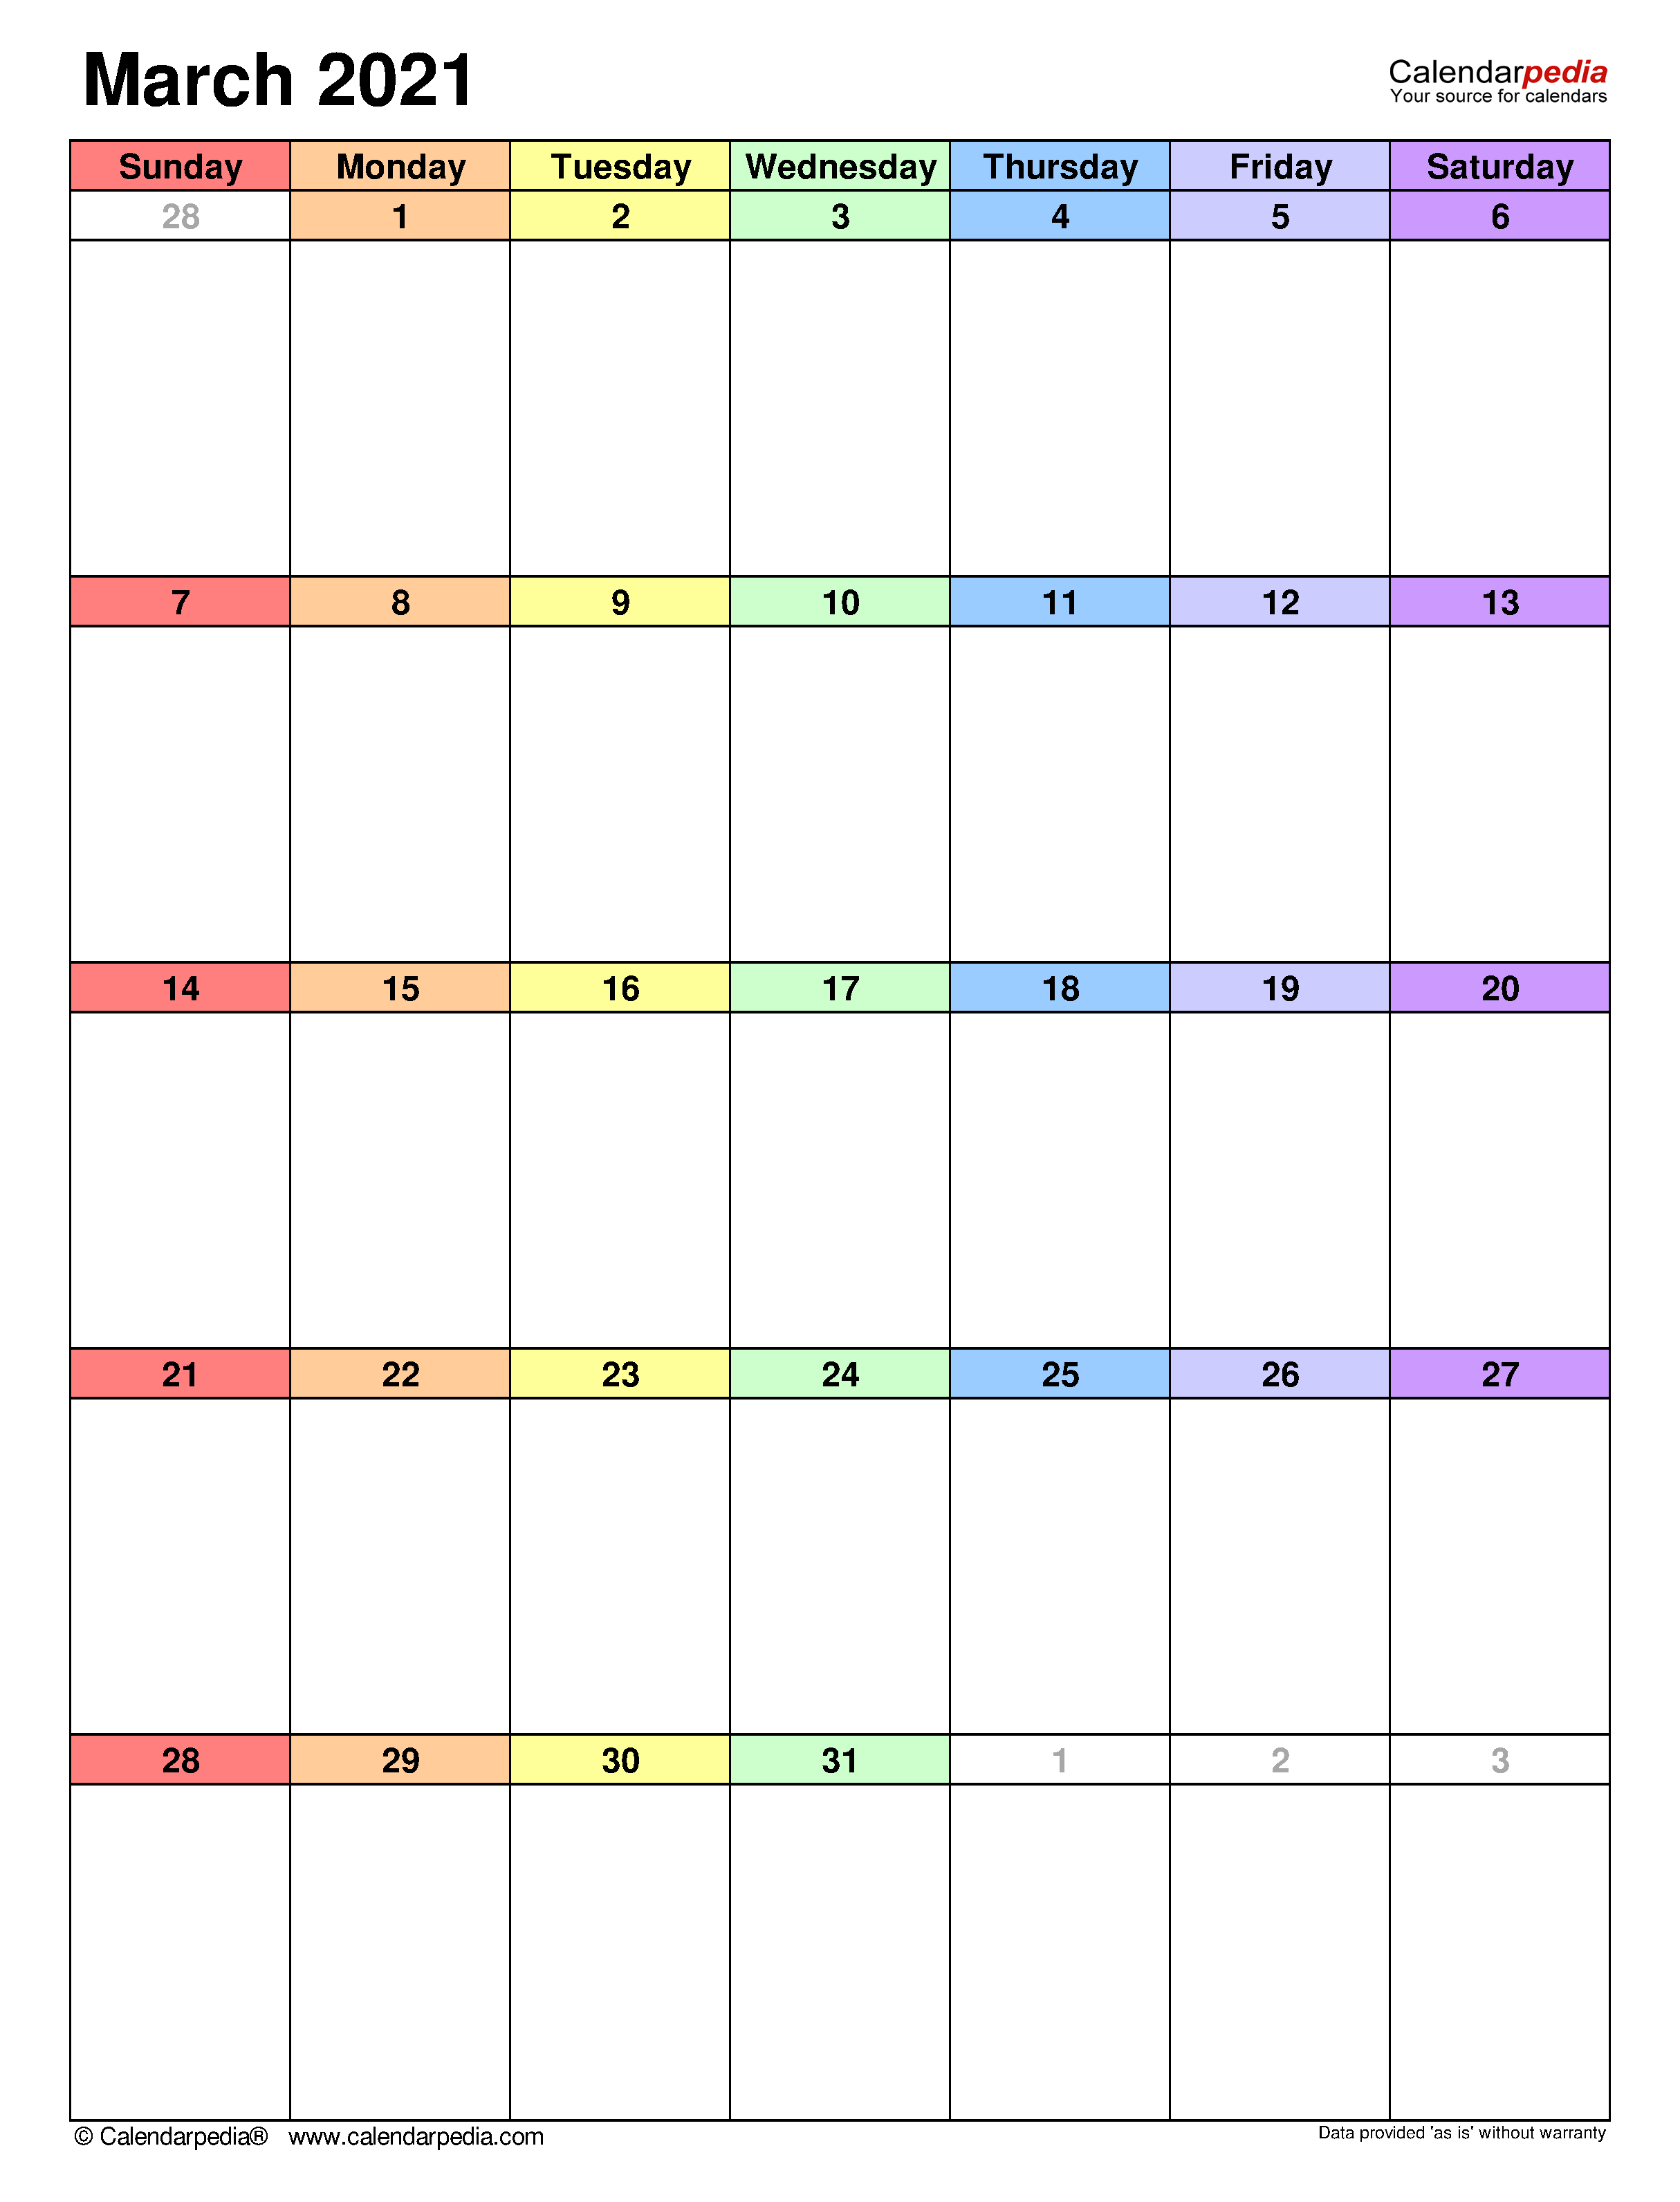 March 2021 Calendar | Templates For Word, Excel And Pdf